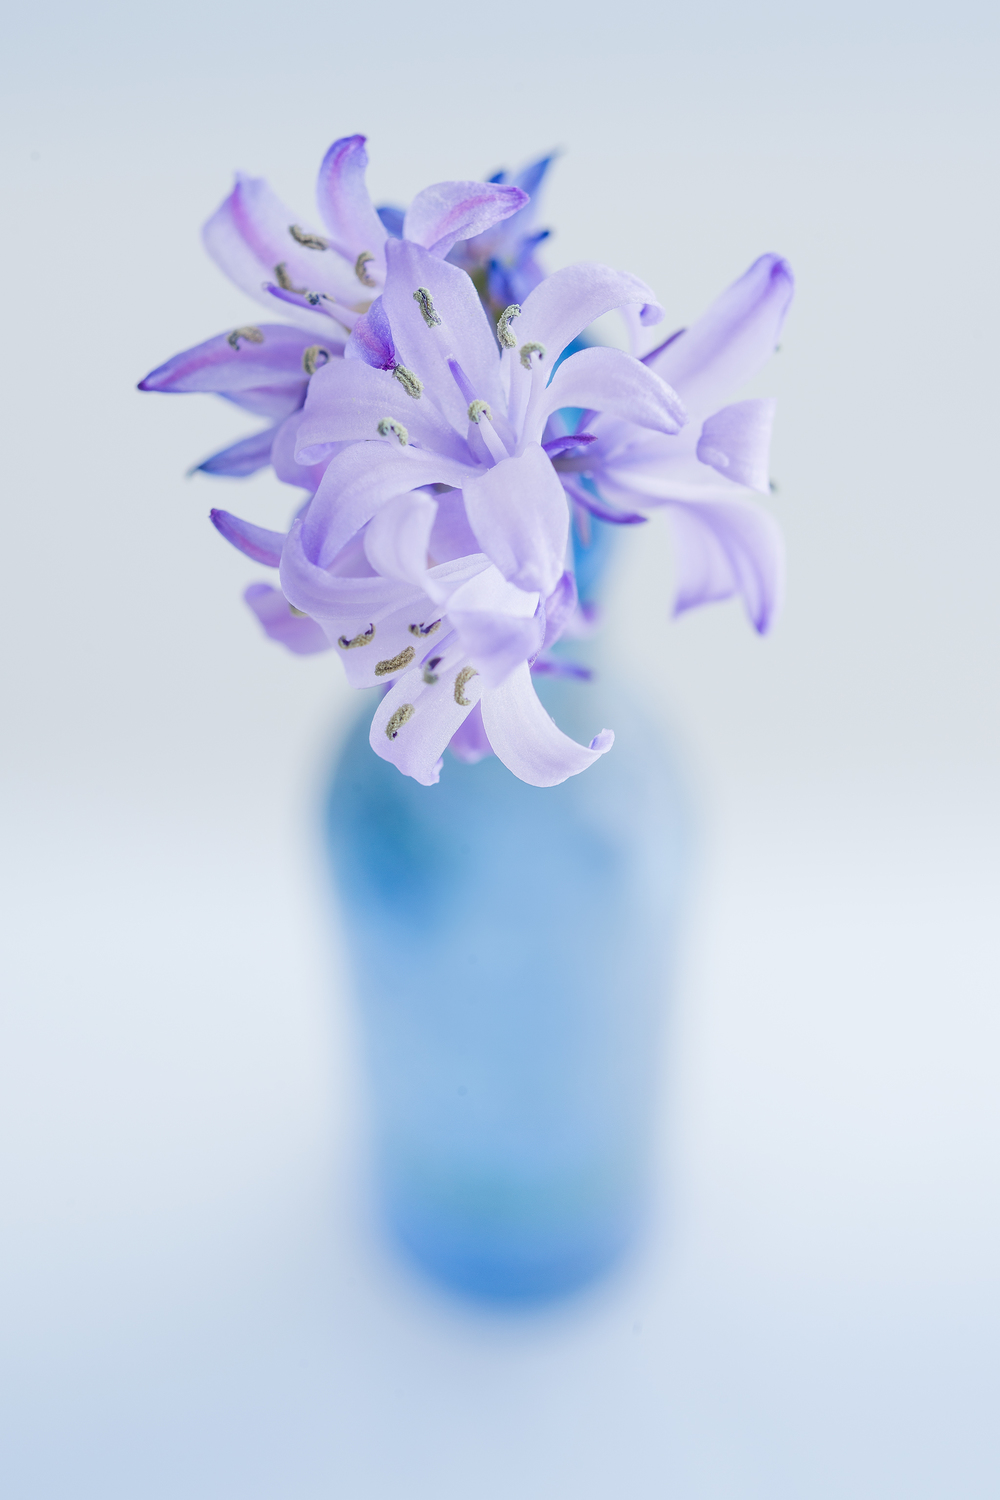 bluebell-for-web.jpg